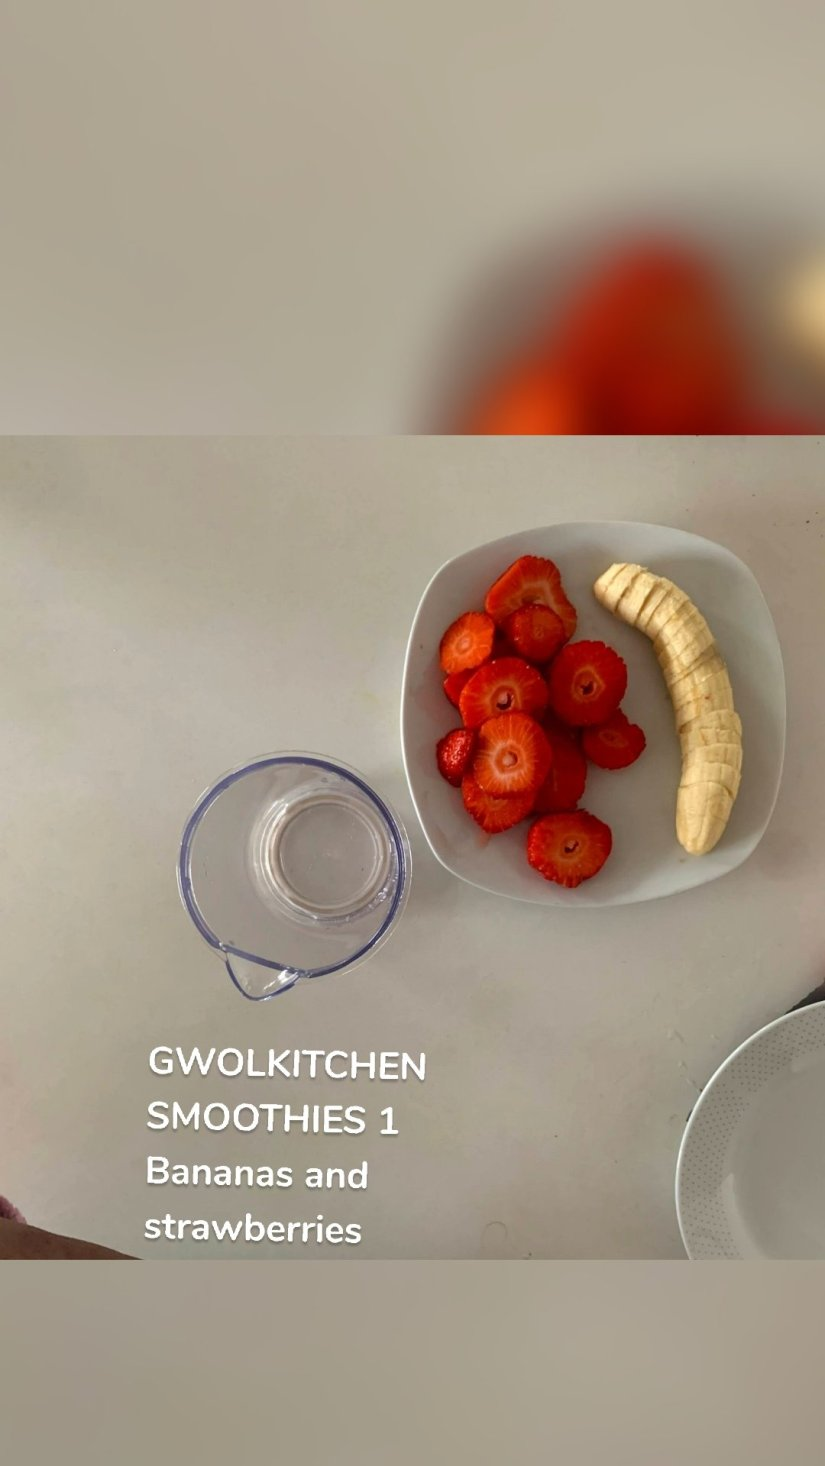 GWOLKITCHEN SMOOTHIES 1 Bananas and strawberries